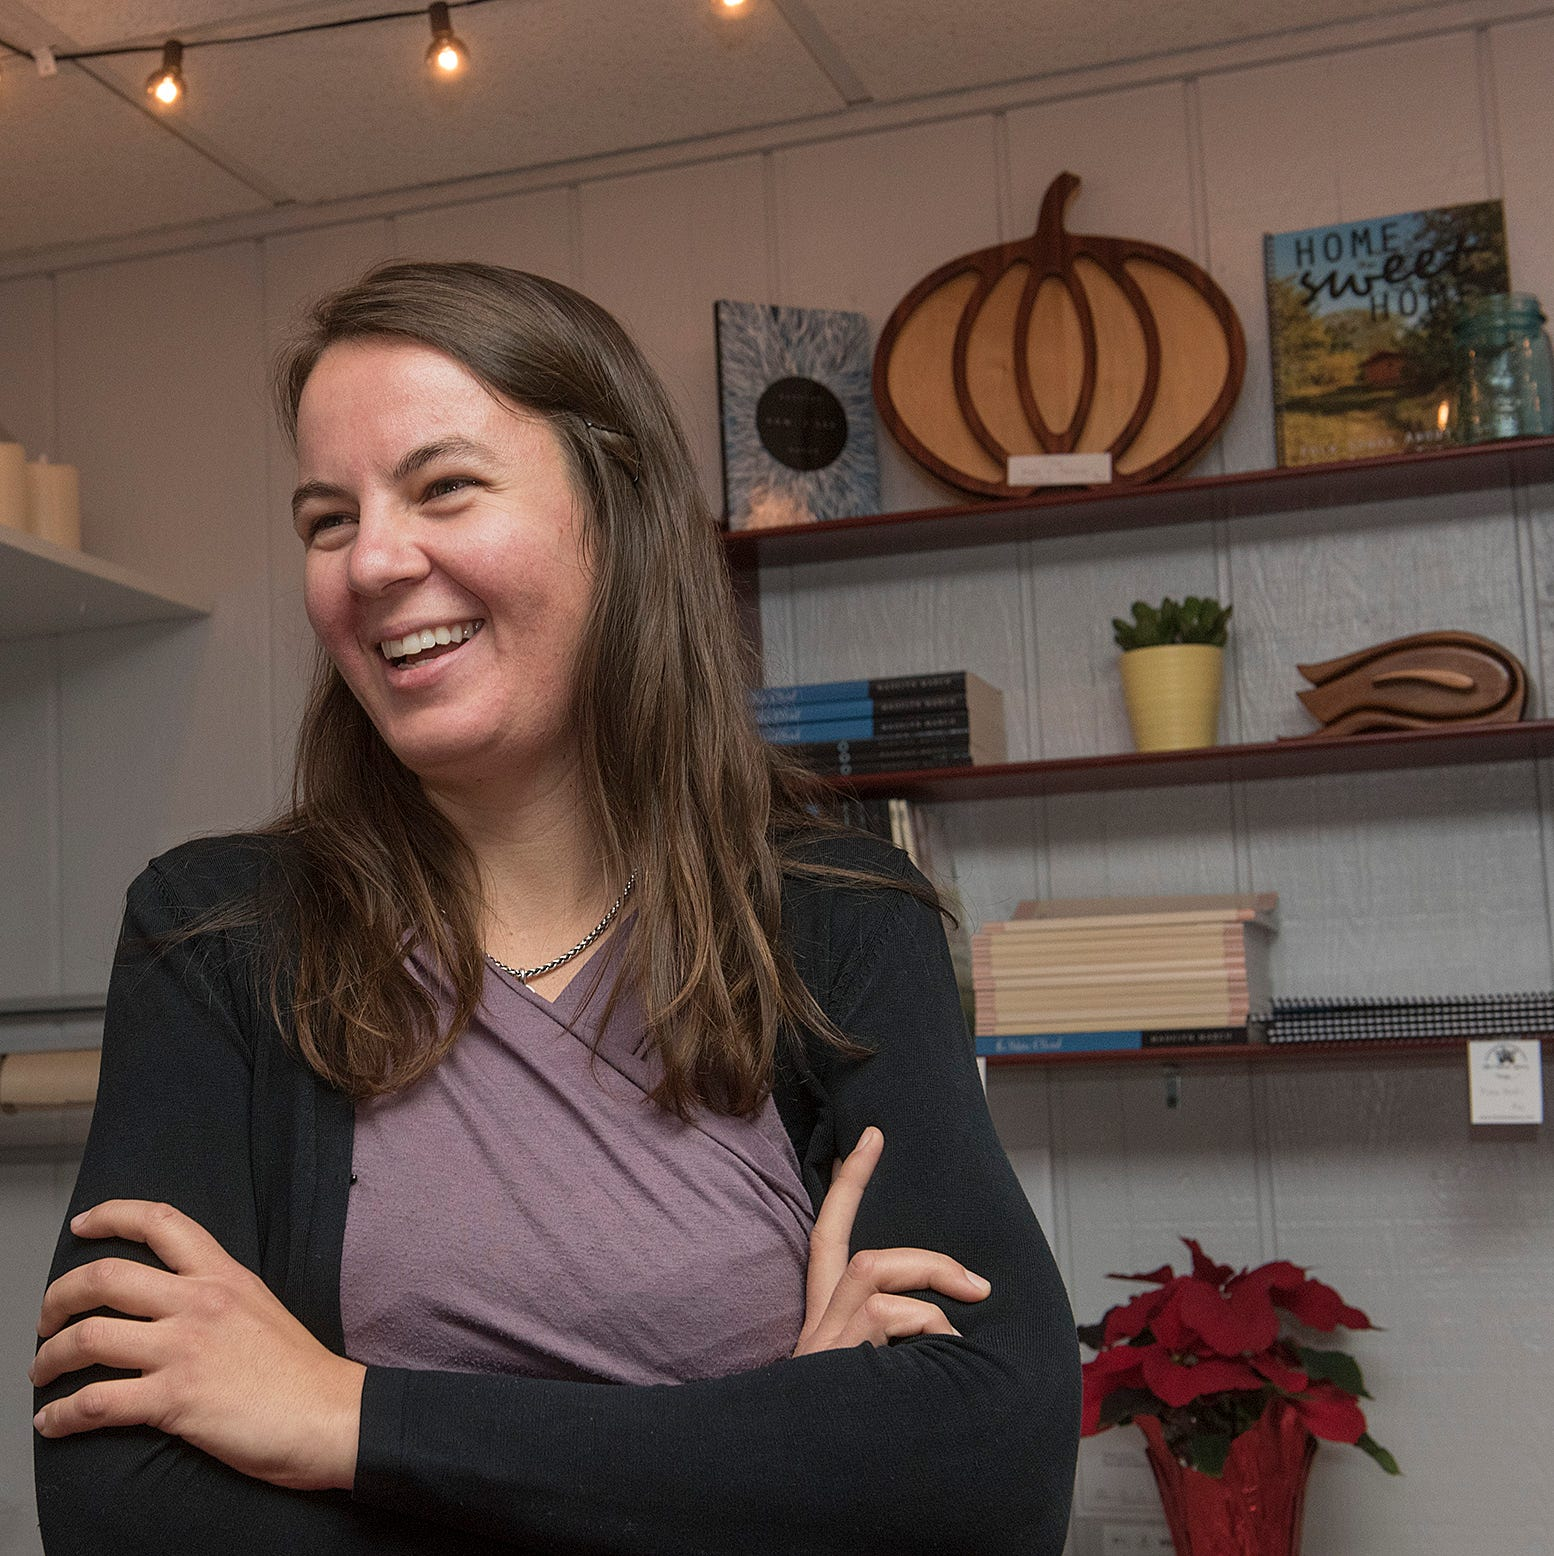 The Whole Berry shop owner invites you to hang out at her new boutique